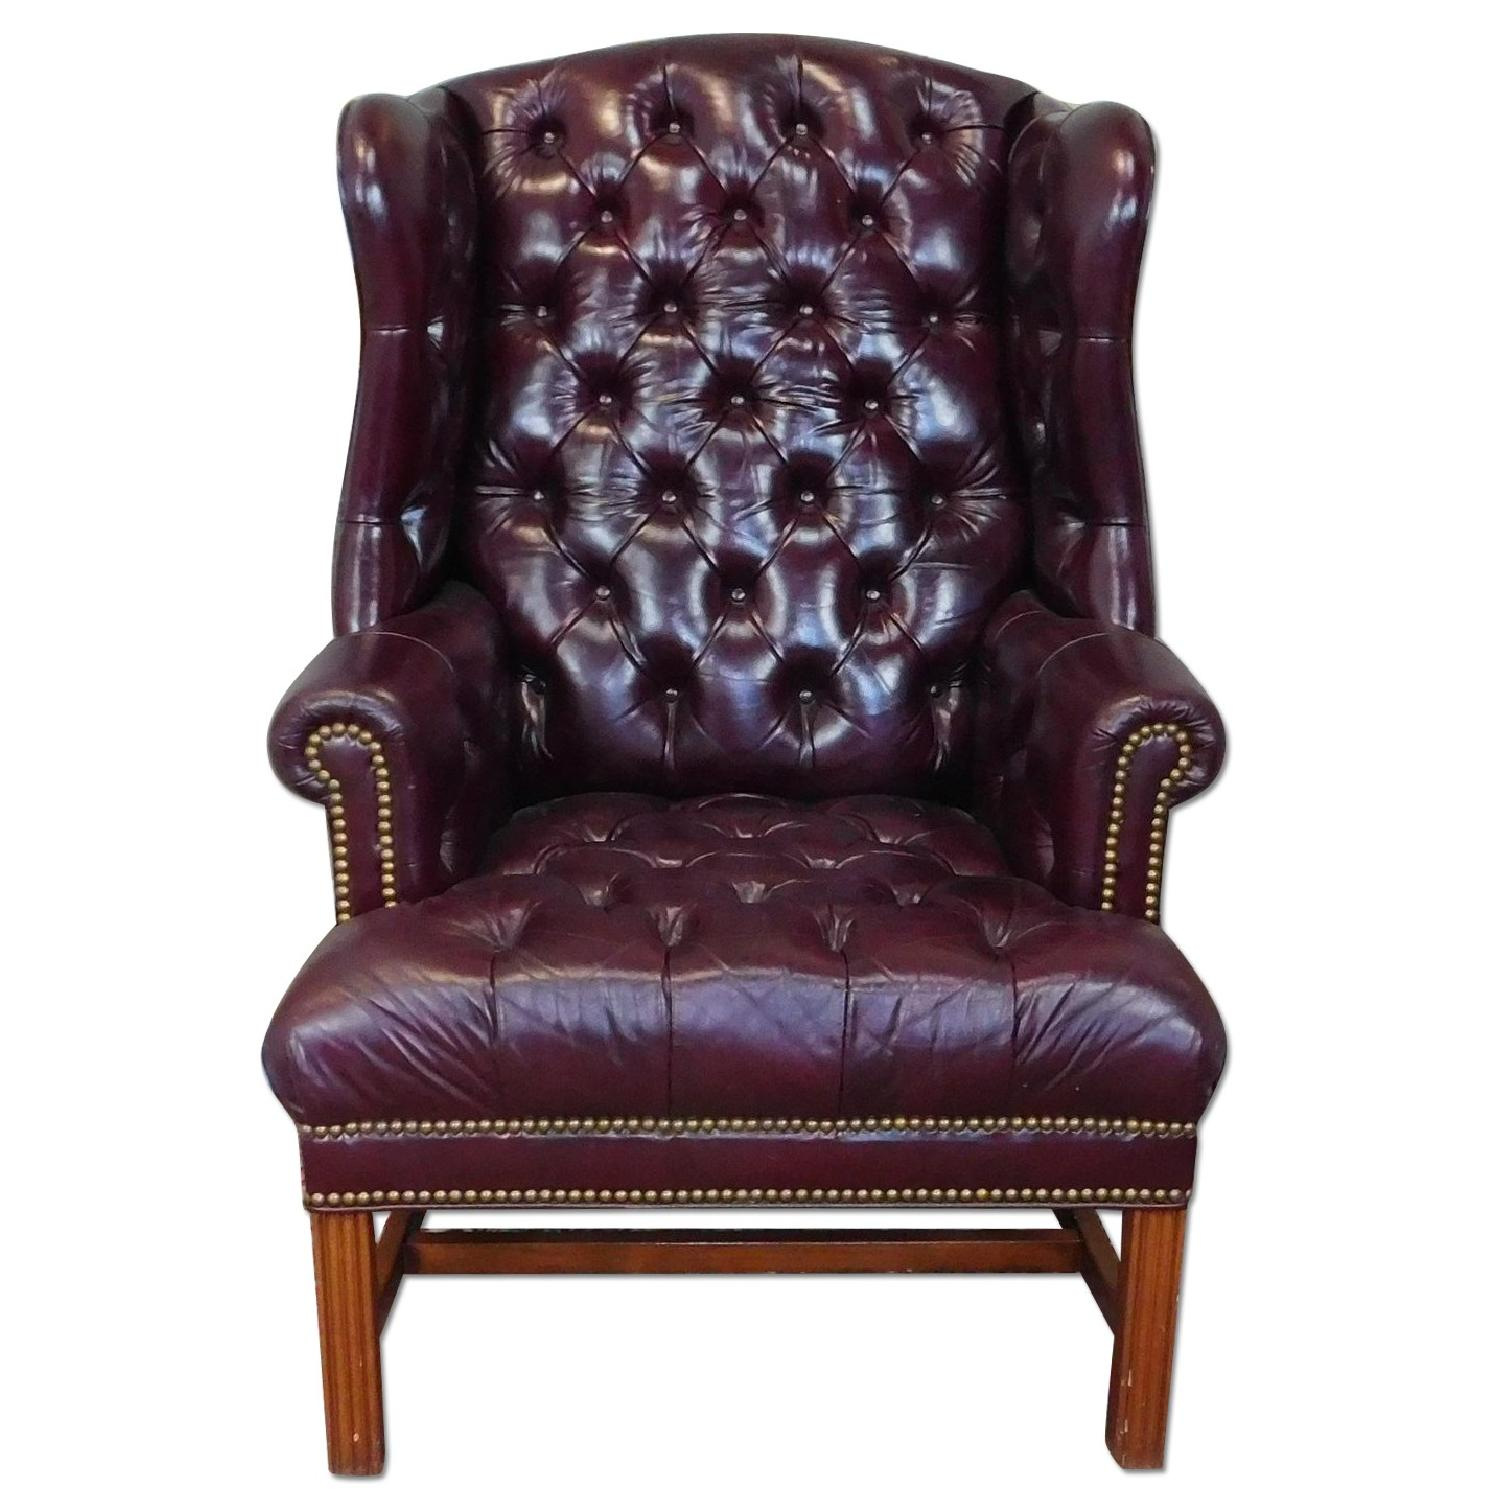 1990s Reproduction English Tufted Leather Wingback Armchair